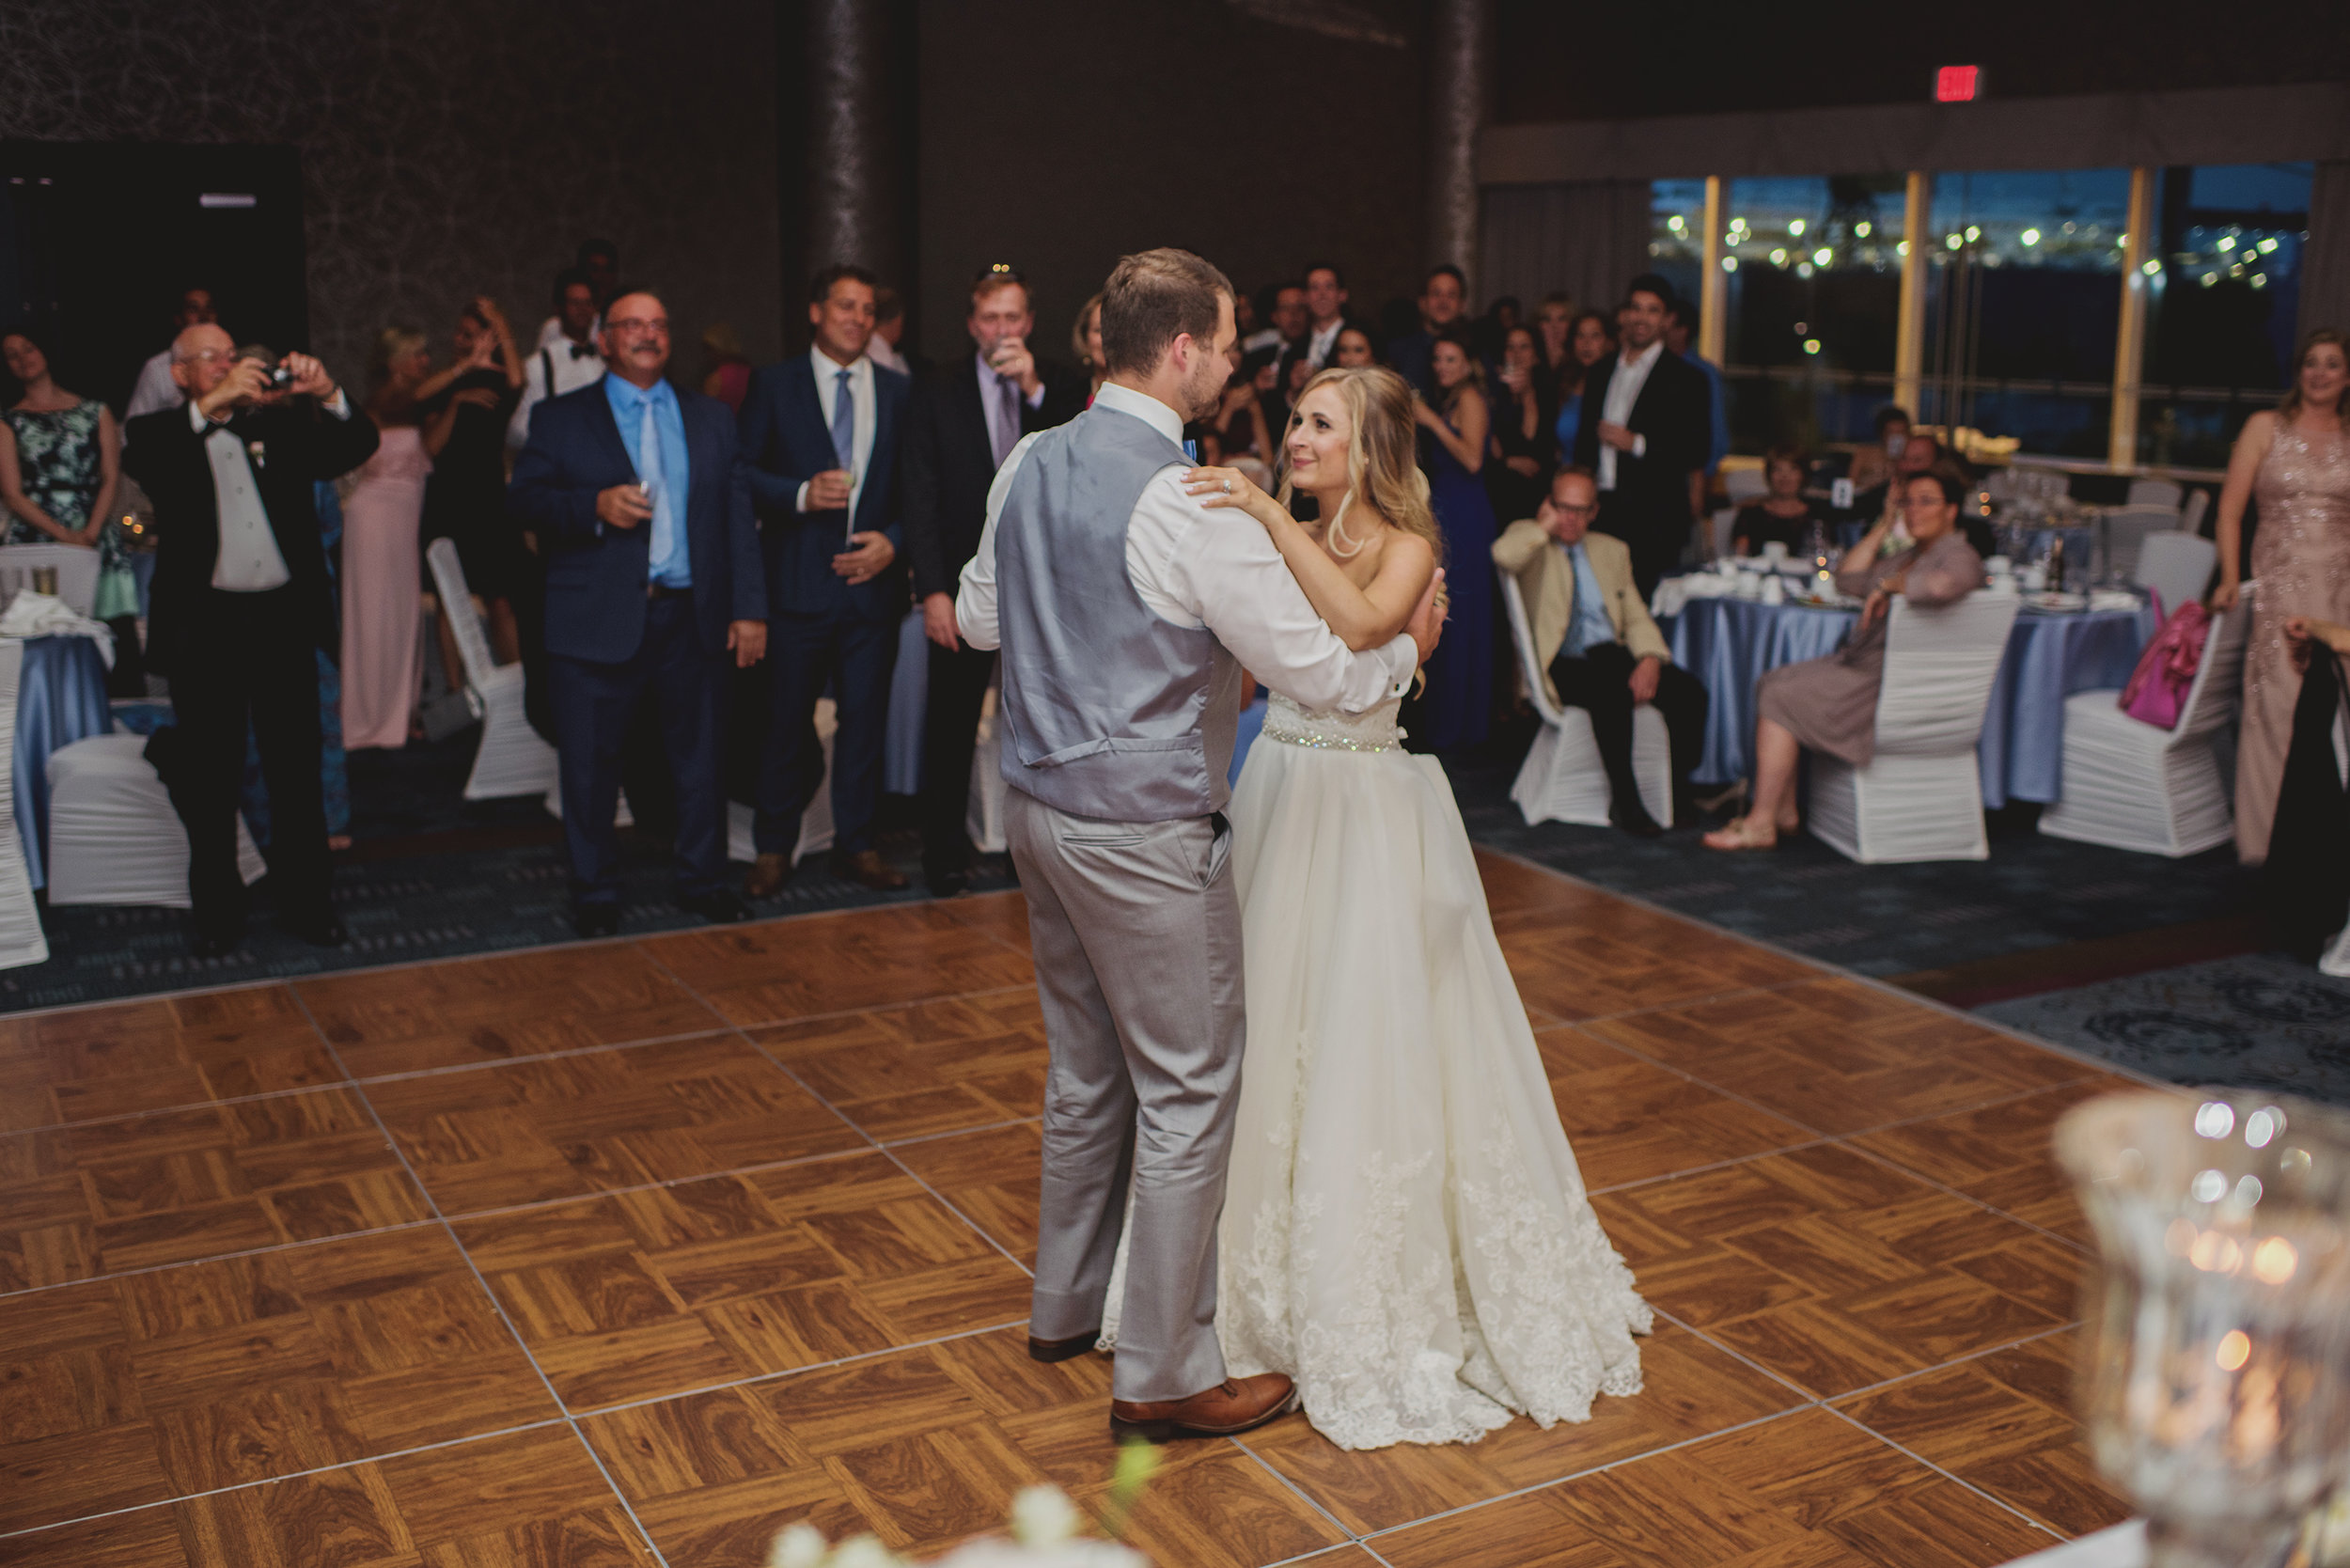 M&J_First Dance-024.jpg